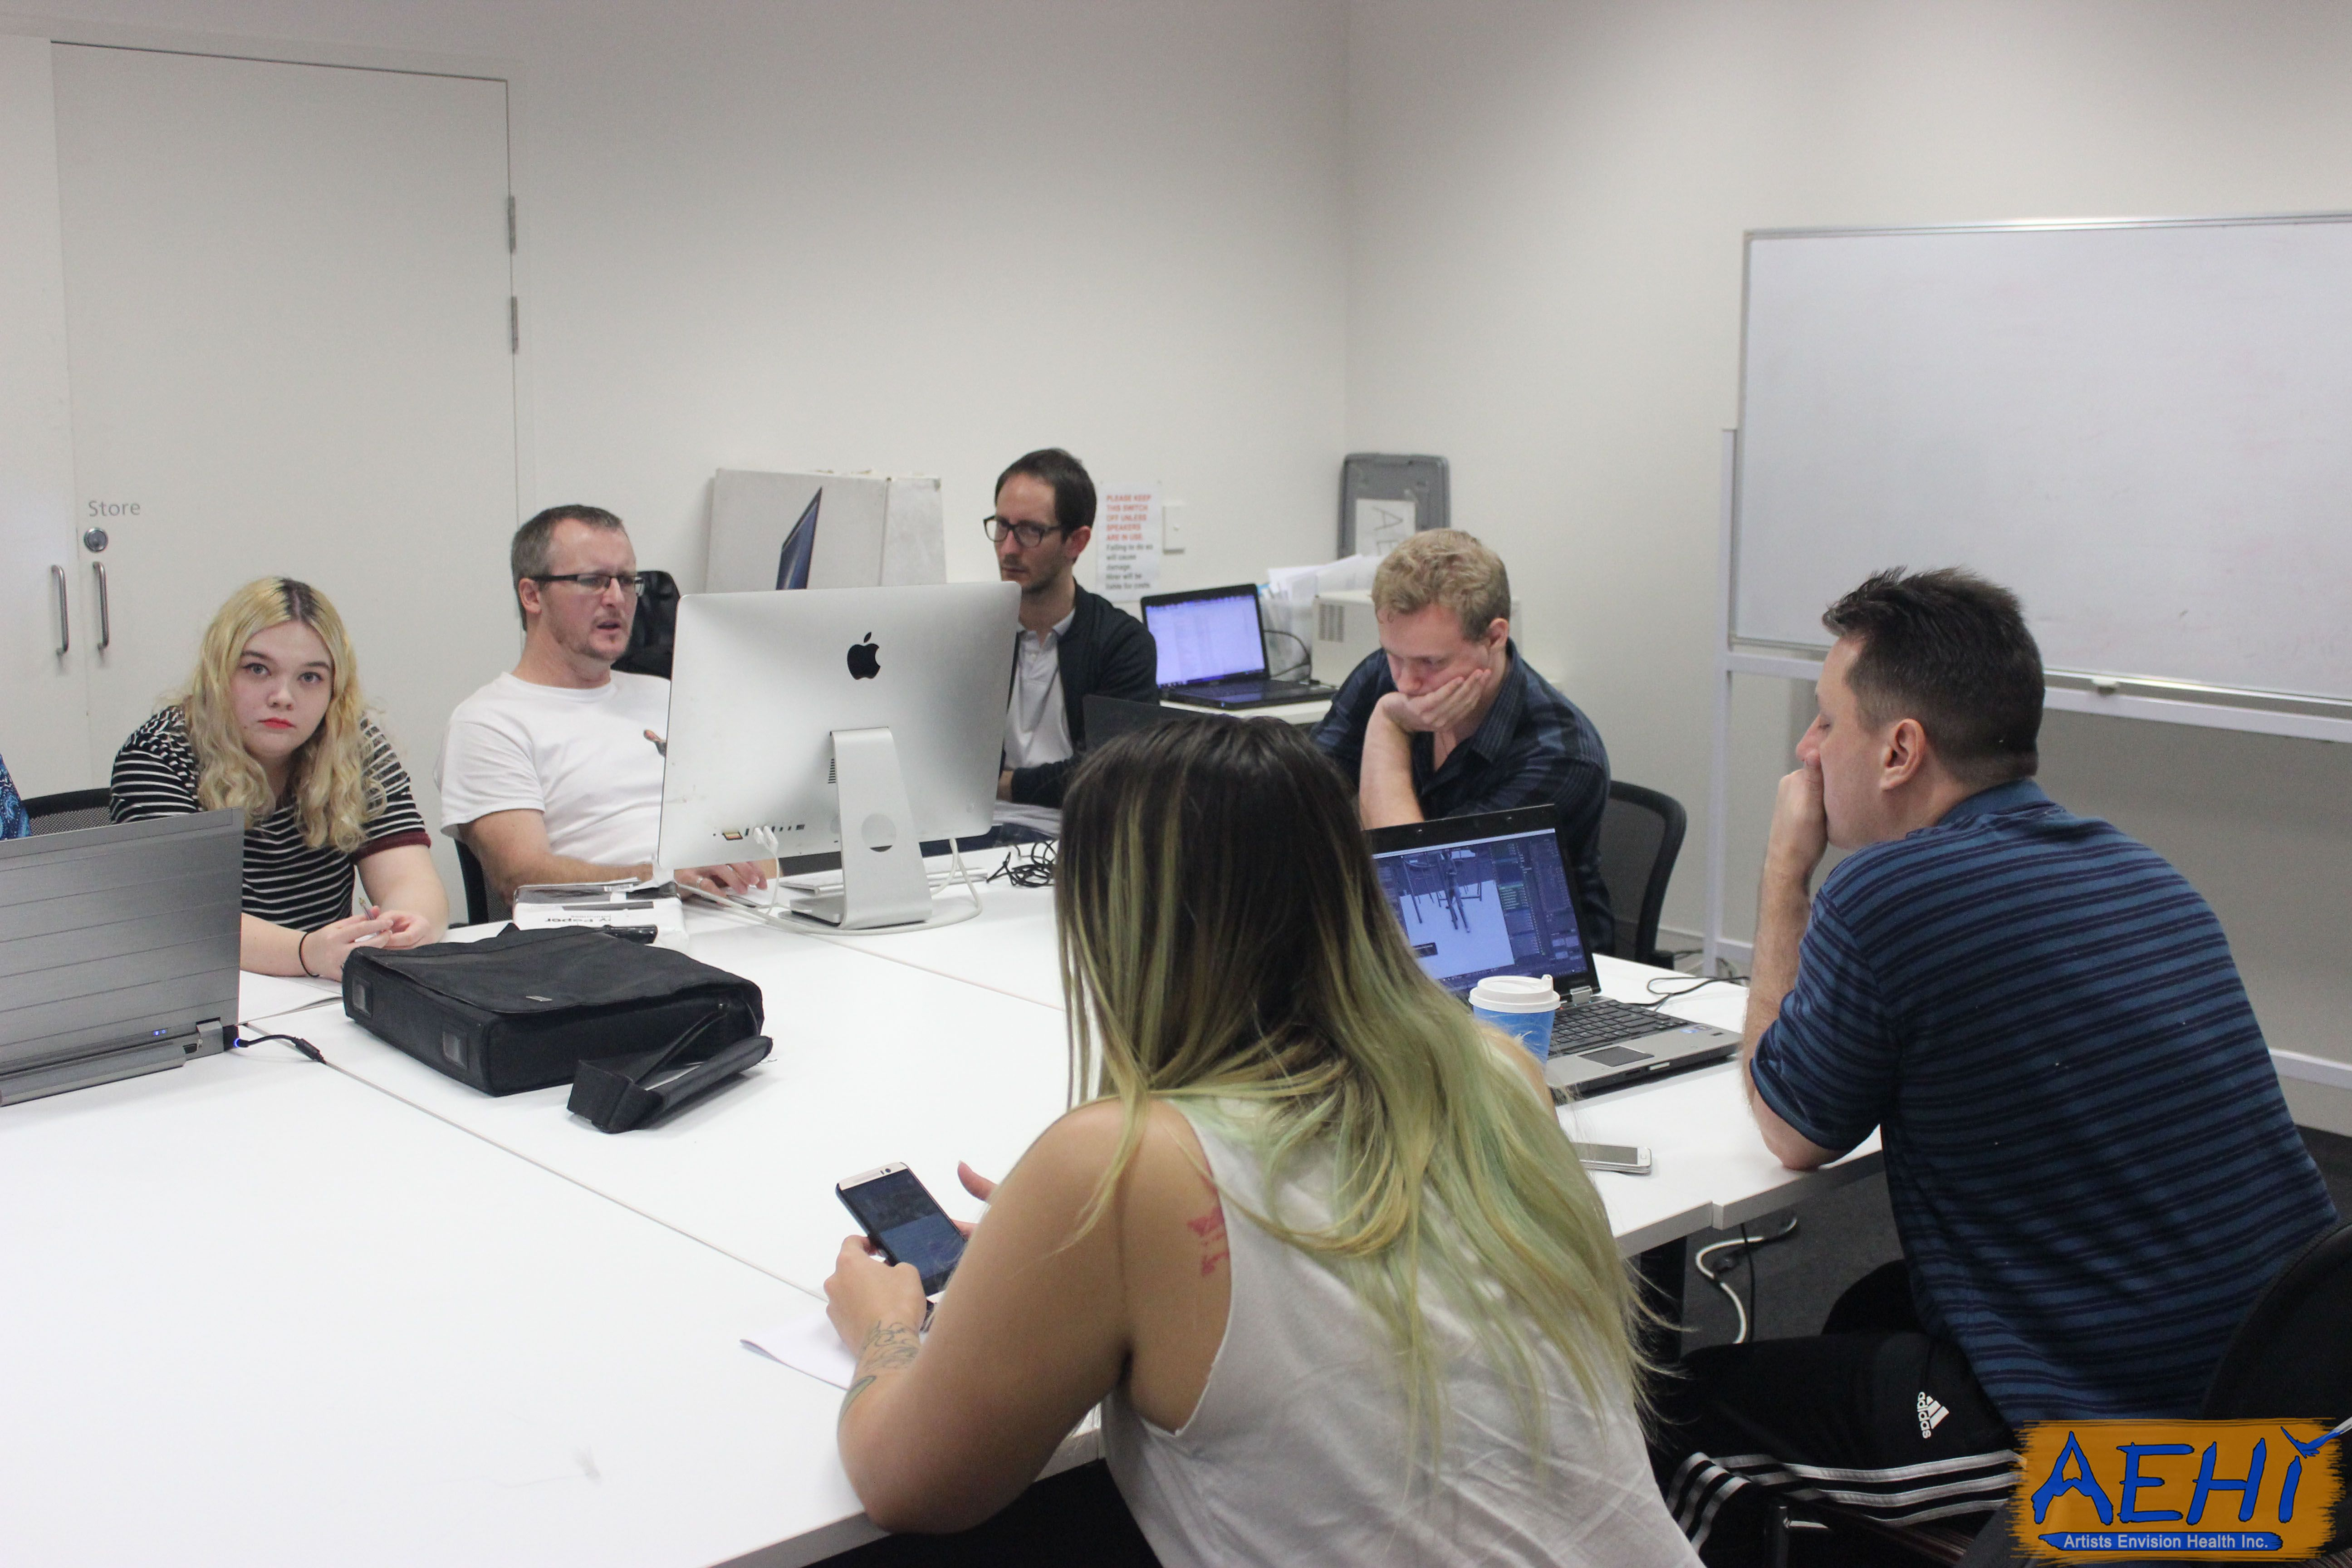 Some of our cast and crew brainstorming and working on a couple of projects for our show Banana Flavoured Milk. #bananaflavouredmilk #aehiqld #comedy #bfm #tinyRick